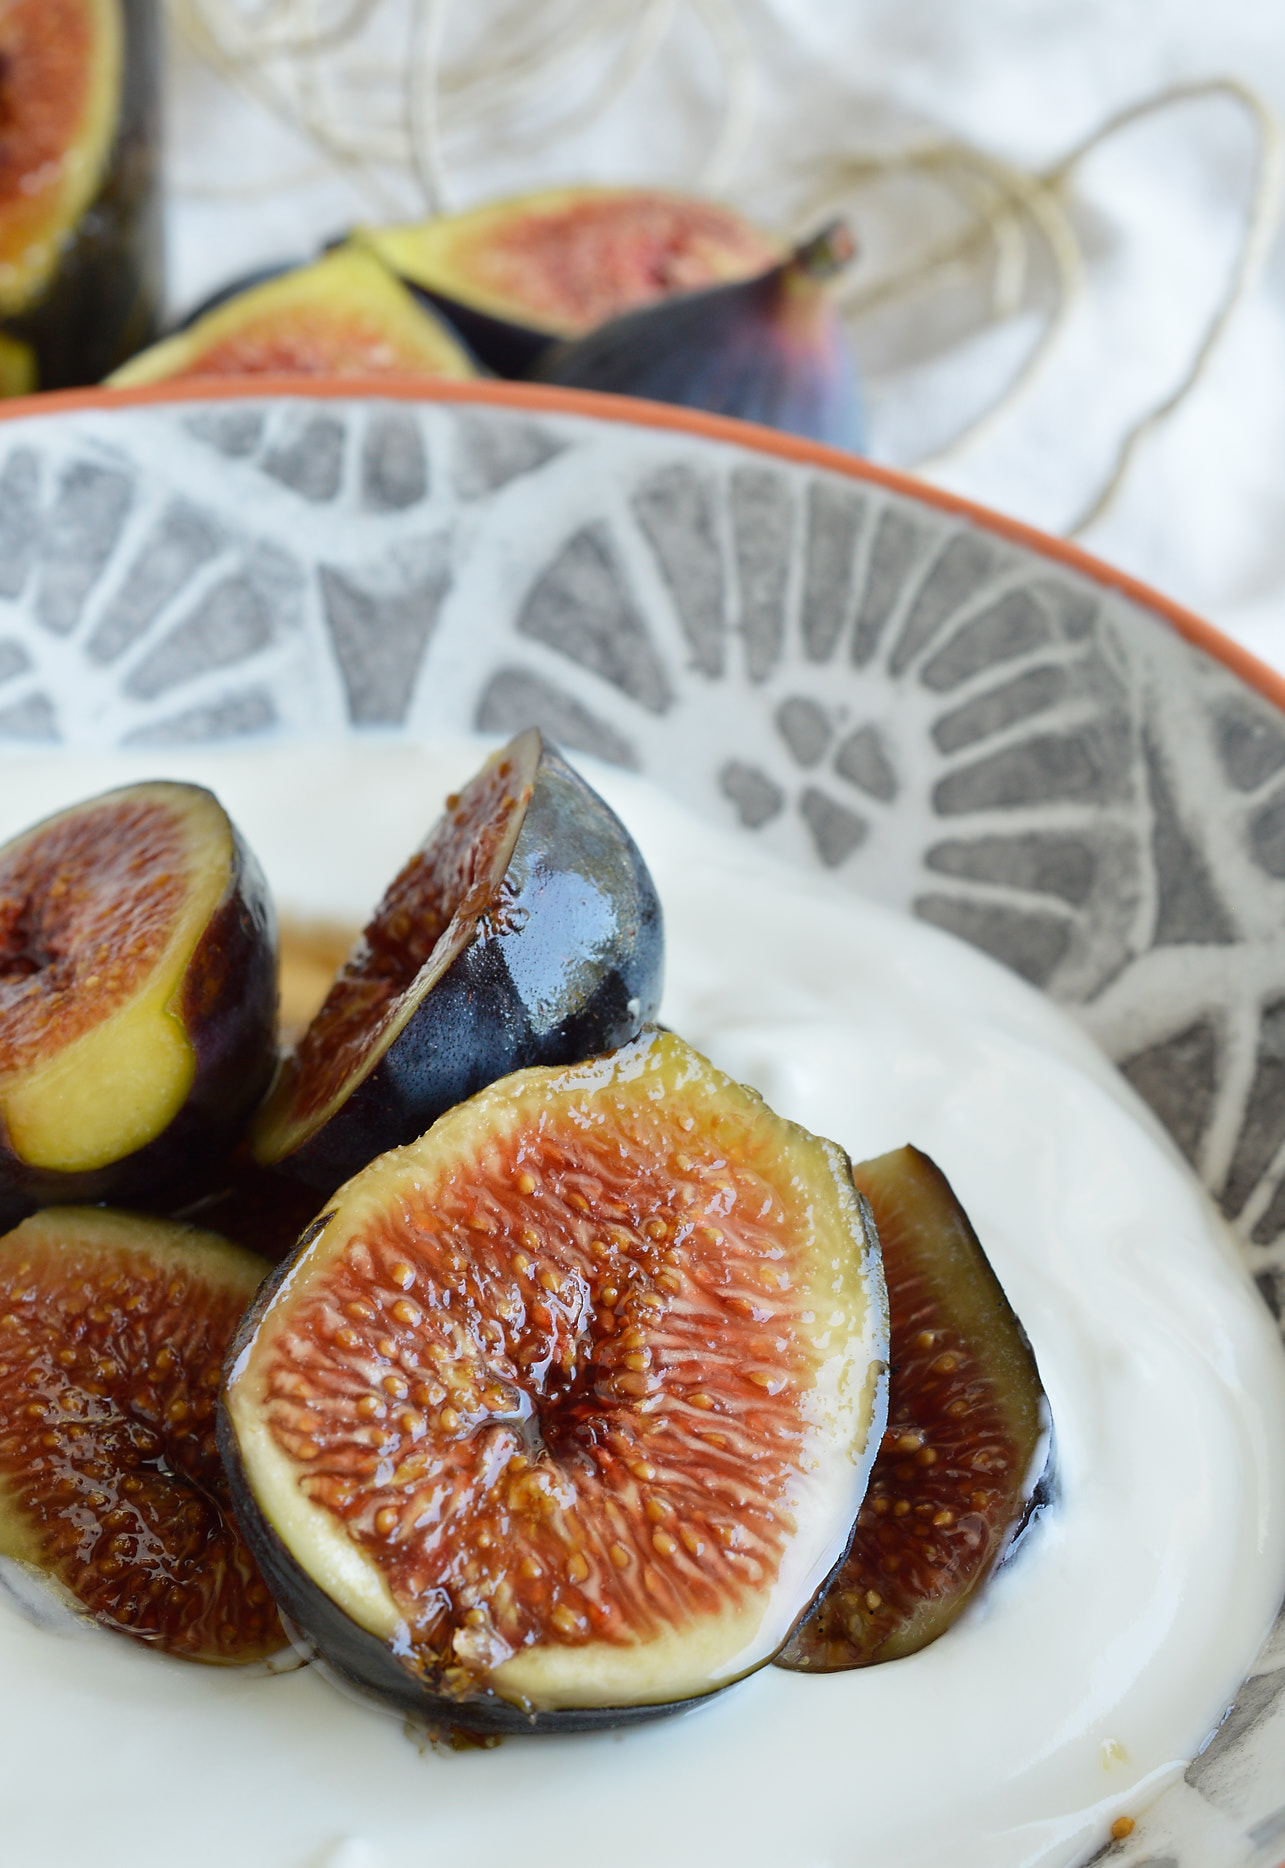 It is my favorite time of year, Fig Season! If you have an abundance of fresh figs or just like boozy fruit try this Amaretto Soaked Figs Recipe. Serve over ice cream or yogurt for a unique and flavorful dessert!